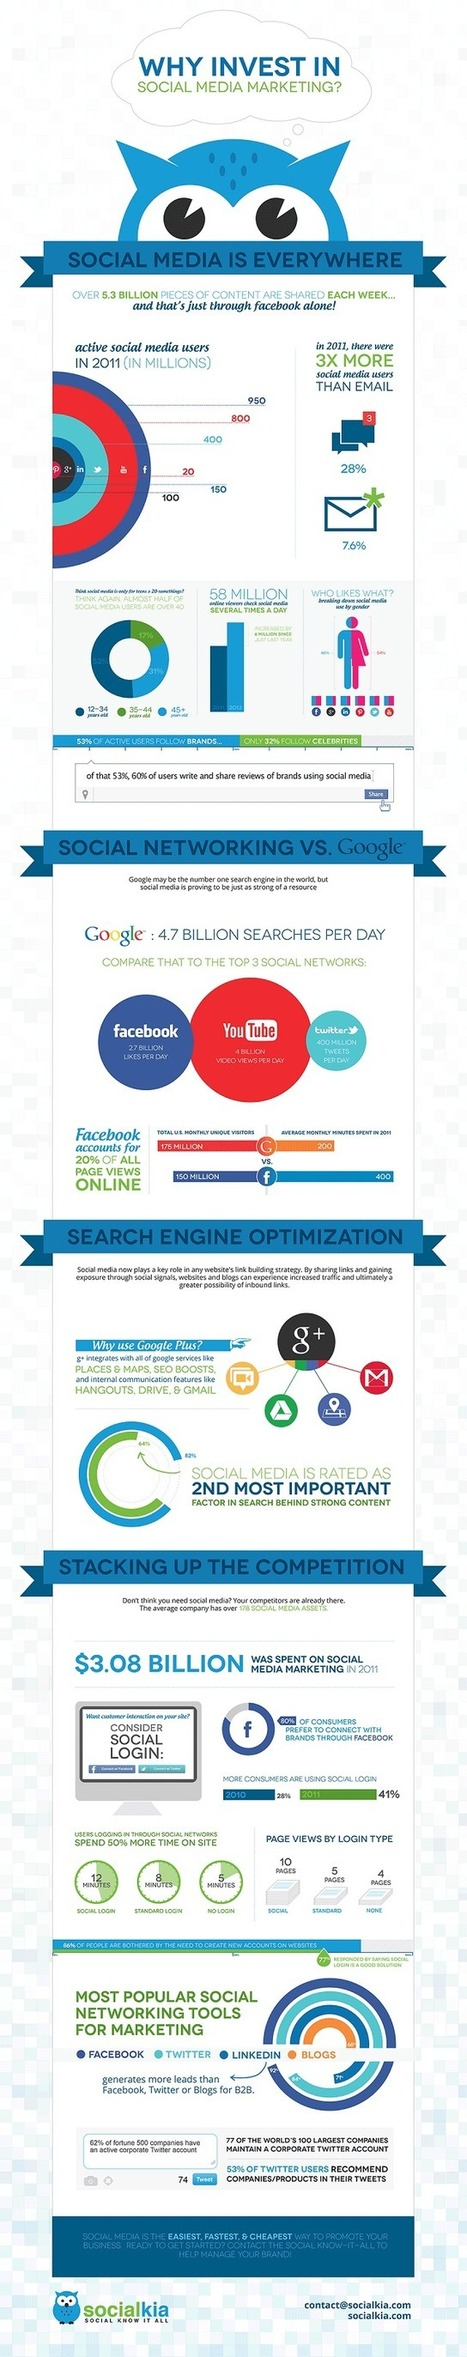 Why Social Media is Best Bet to Promote your Business [INFOGRAPHIC]   social media market research   Scoop.it